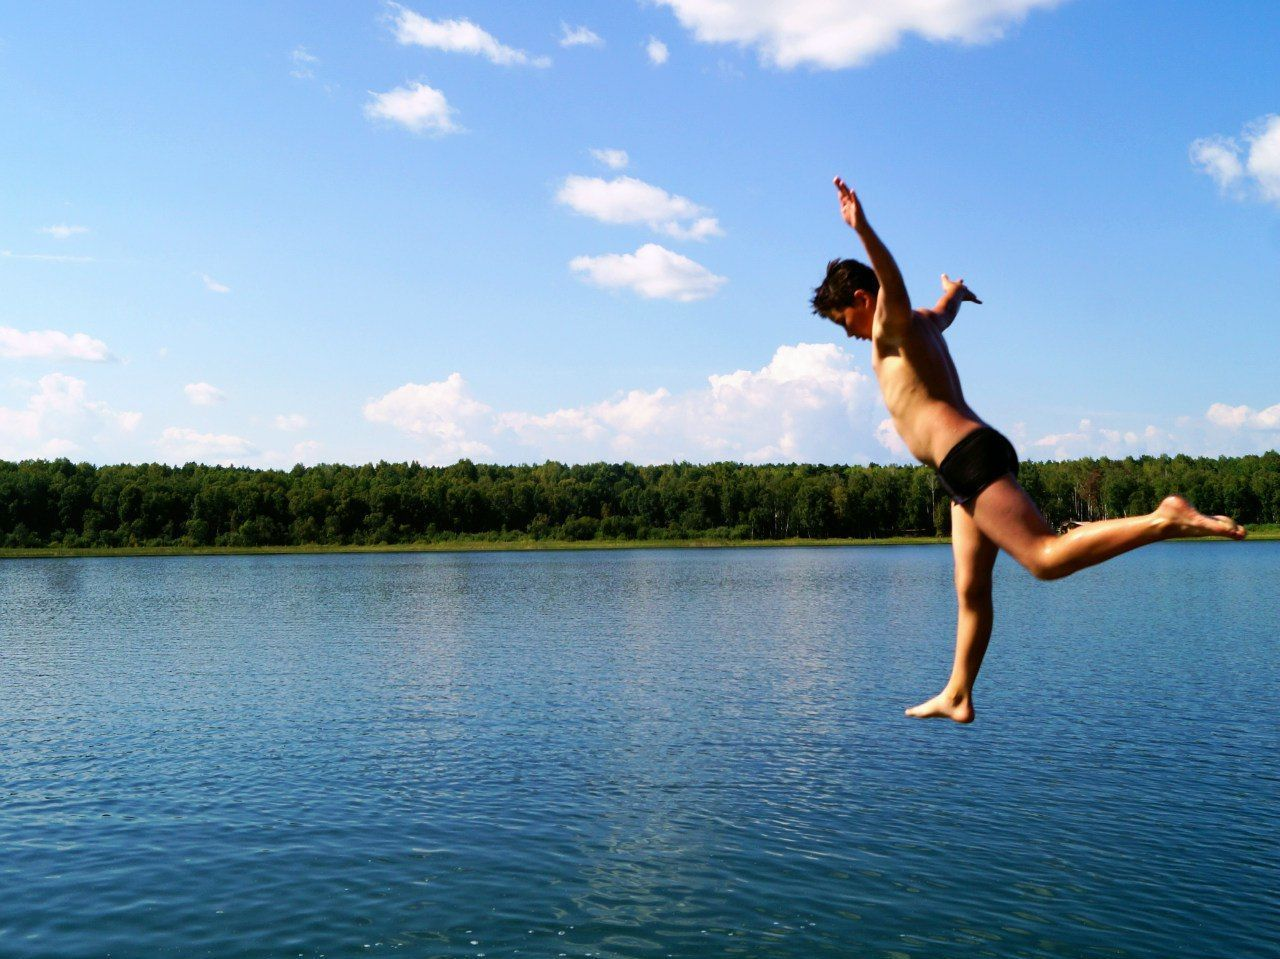 Flight by air boy on lake Danilino Beauty In Nature Blue Boy Flight By Air Lake Lake View Nature One Person Summer Water